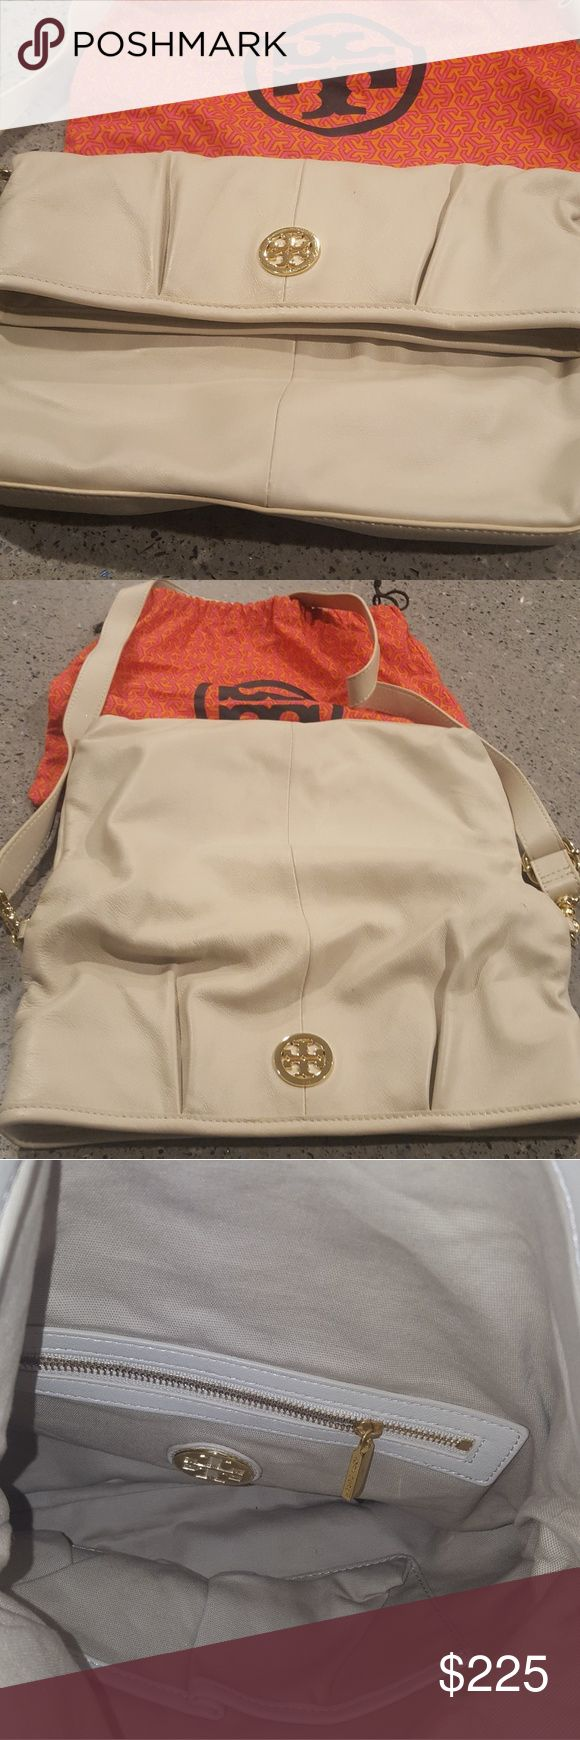 Tory Burch Foldover Crossbody Bag Tory Burch medium foldover cross body bag. Cream with gold hardware. I bought this several years ago and only carried it onces. Its been kept in a dust bag. Its in excellent condition. No stains inside or outside.  Straps are removable. Very roomy inside. Hard wear still shiny & new. Its been sitting in my closet for years. They dont make this bag anymore. Tory Burch Bags Crossbody Bags